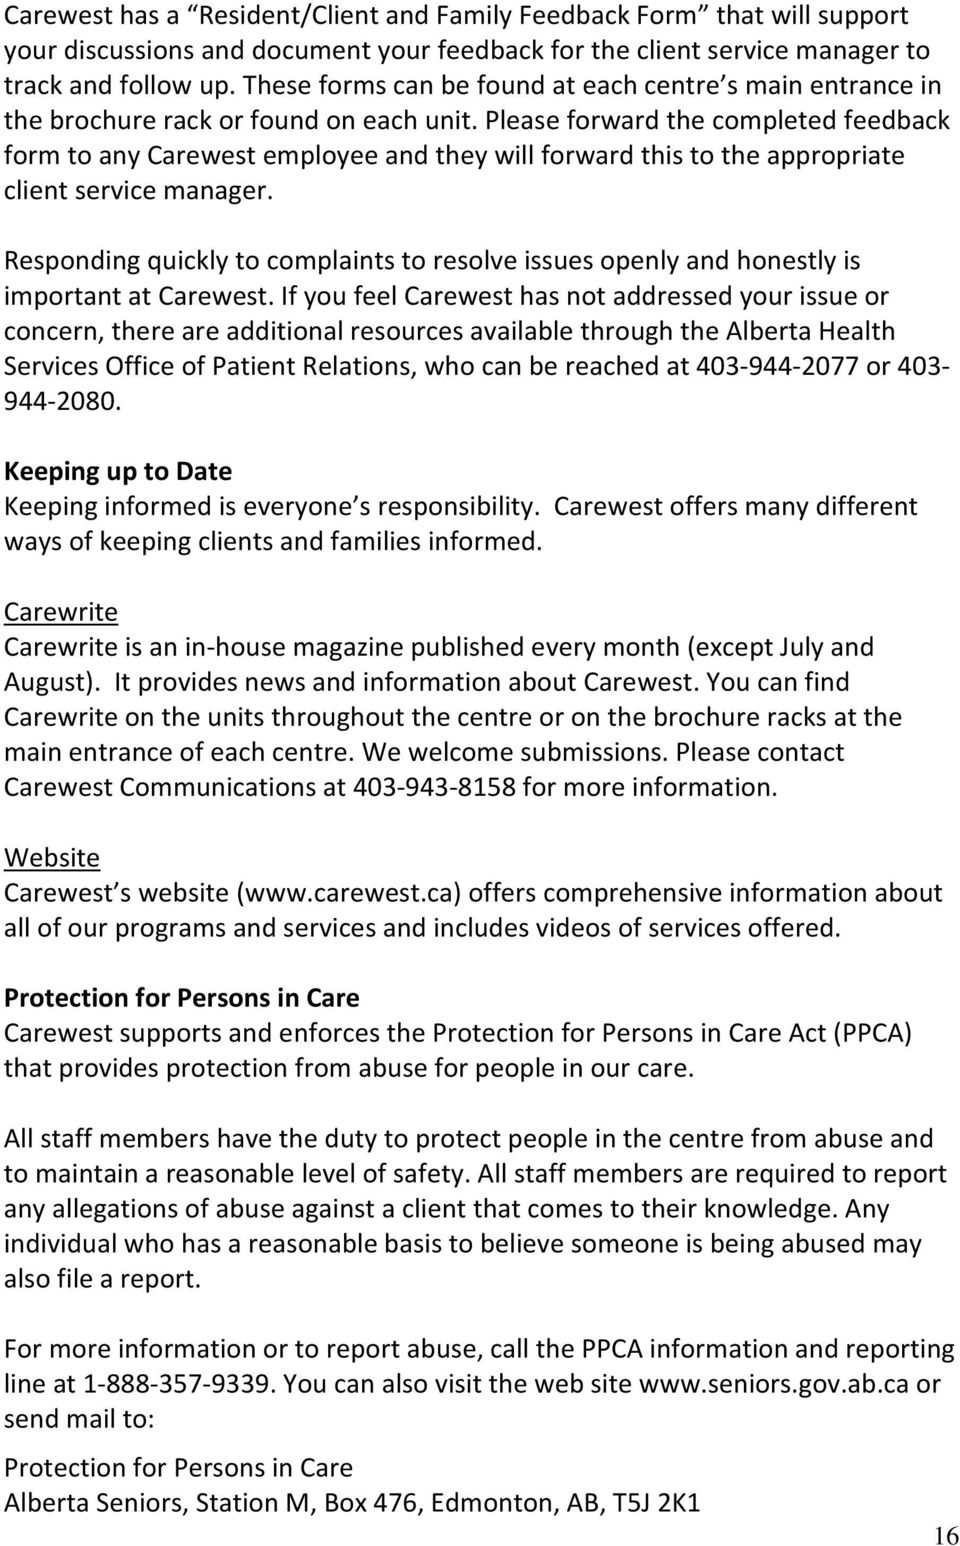 Please forward the completed feedback form to any Carewest employee and they will forward this to the appropriate client service manager.